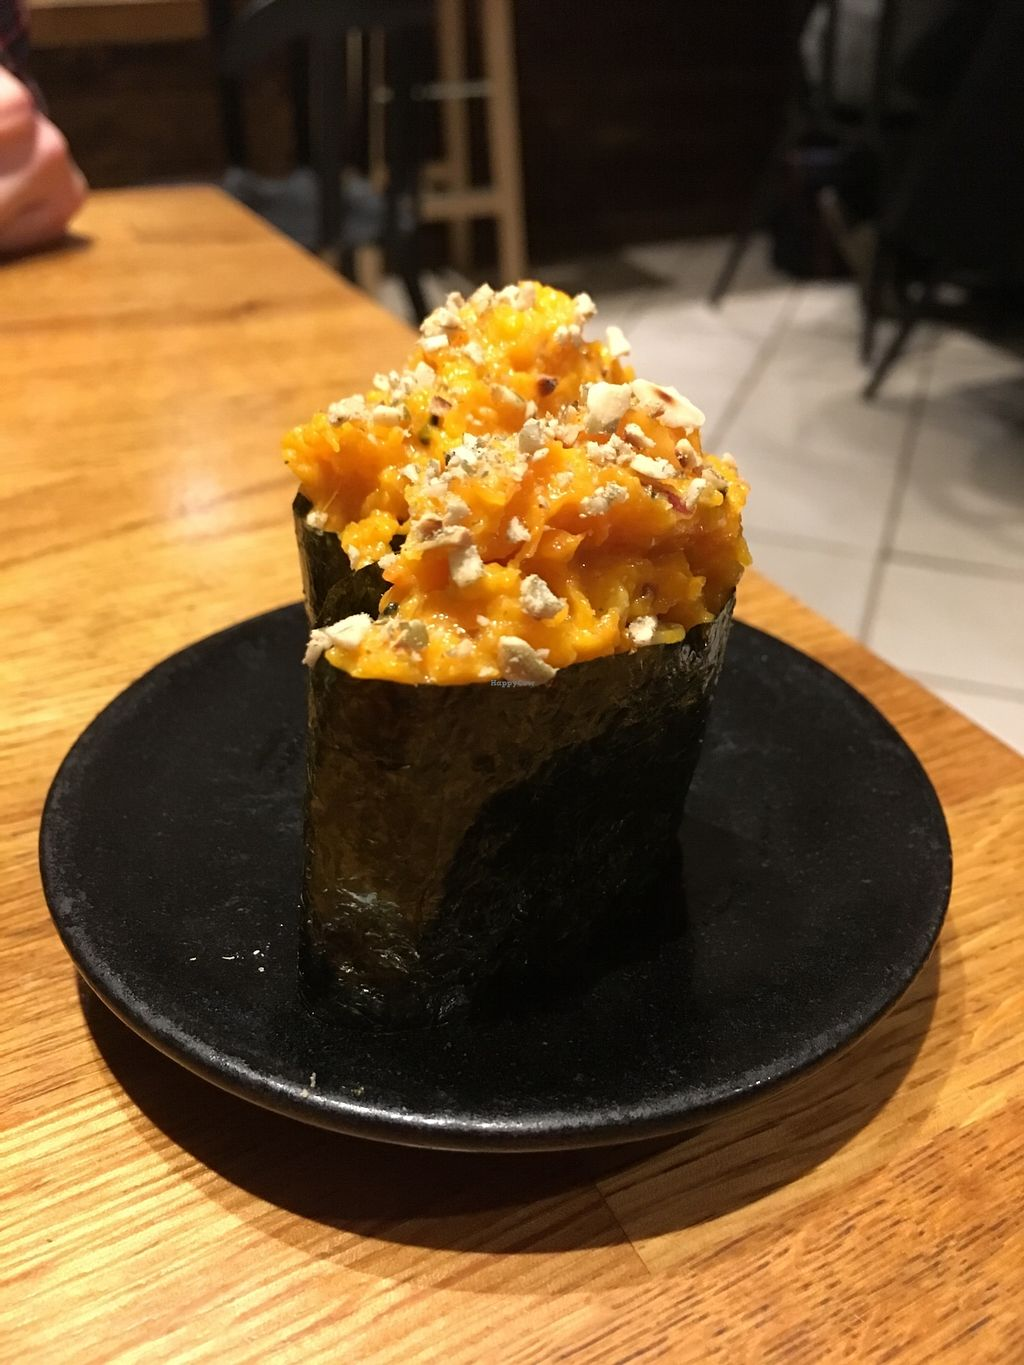 """Photo of Youmiko Vegan Sushi  by <a href=""""/members/profile/Kwacha"""">Kwacha</a> <br/>tasting menu <br/> January 17, 2018  - <a href='/contact/abuse/image/68693/347635'>Report</a>"""